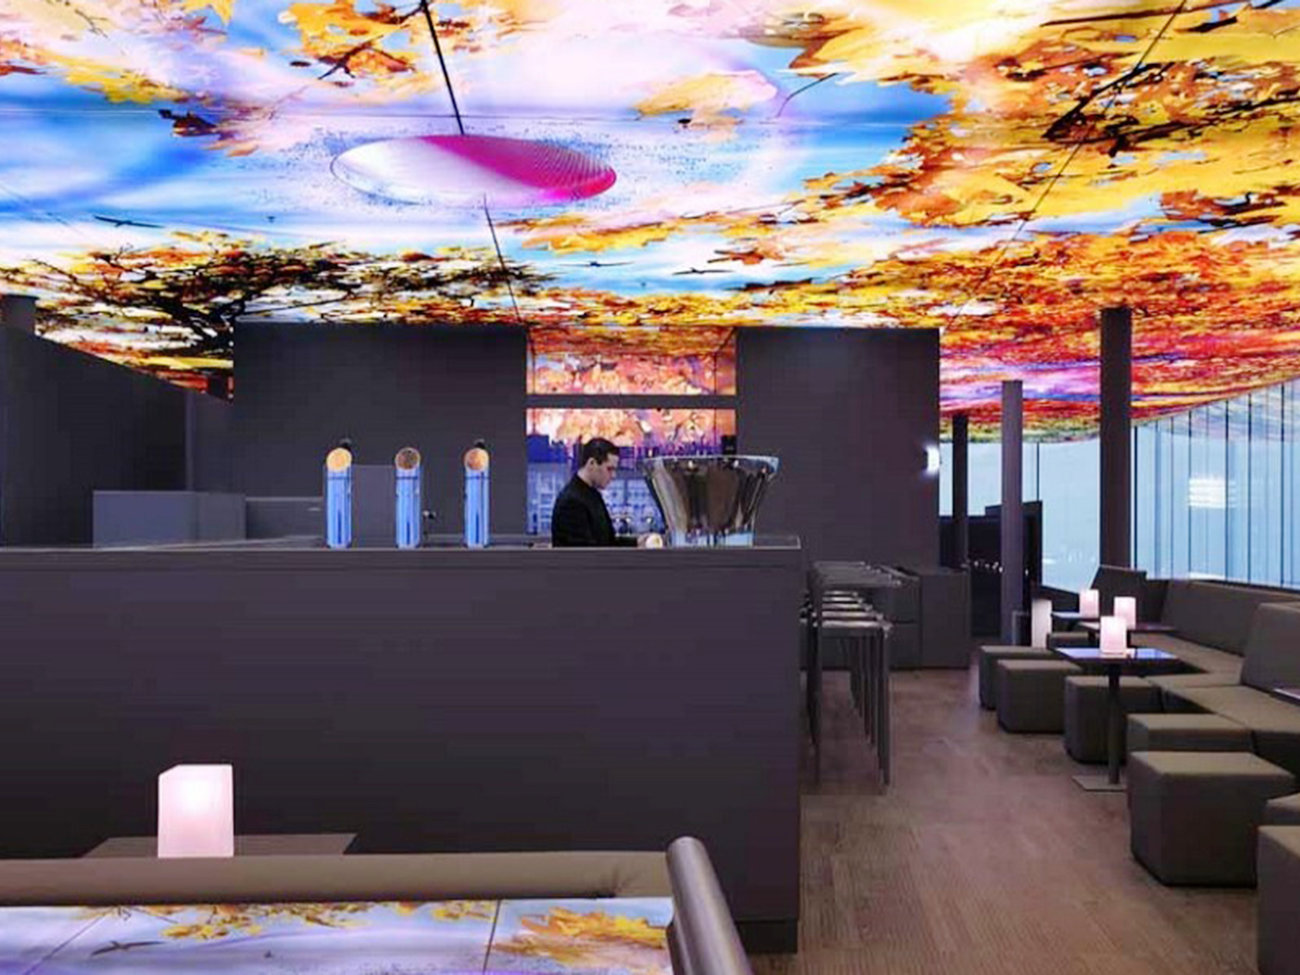 Das Loft Bar & Lounge Sofitel in Vienna